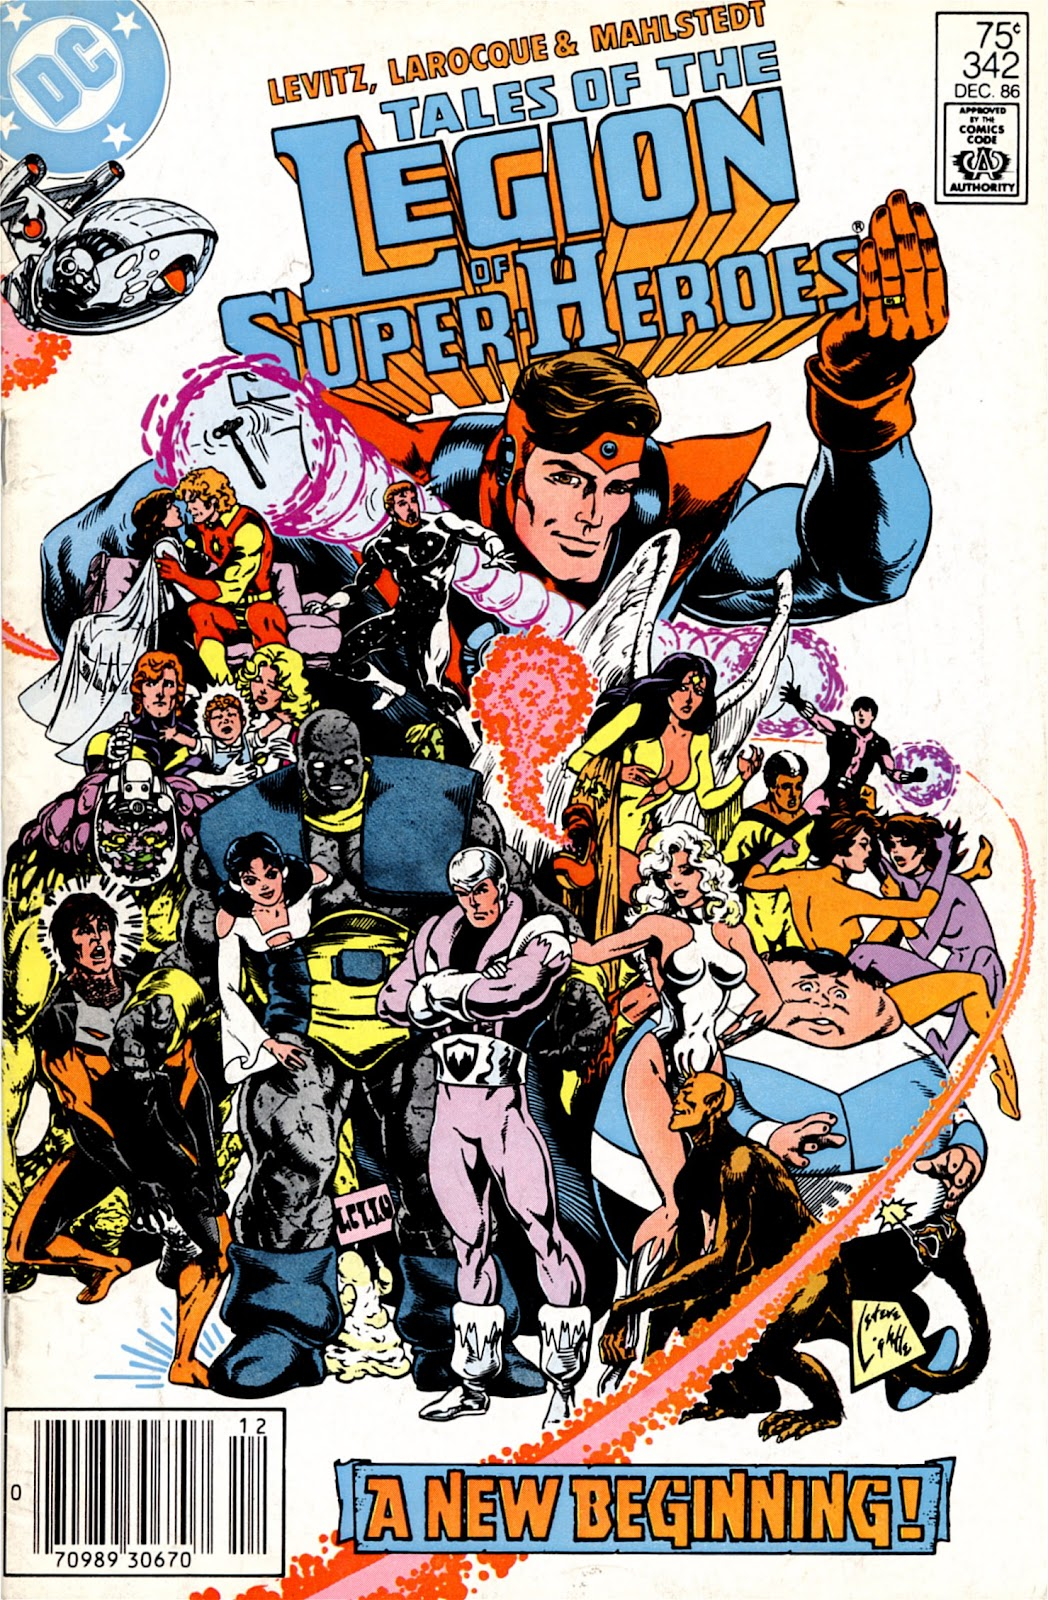 Tales of the Legion Issue #342 #29 - English 1